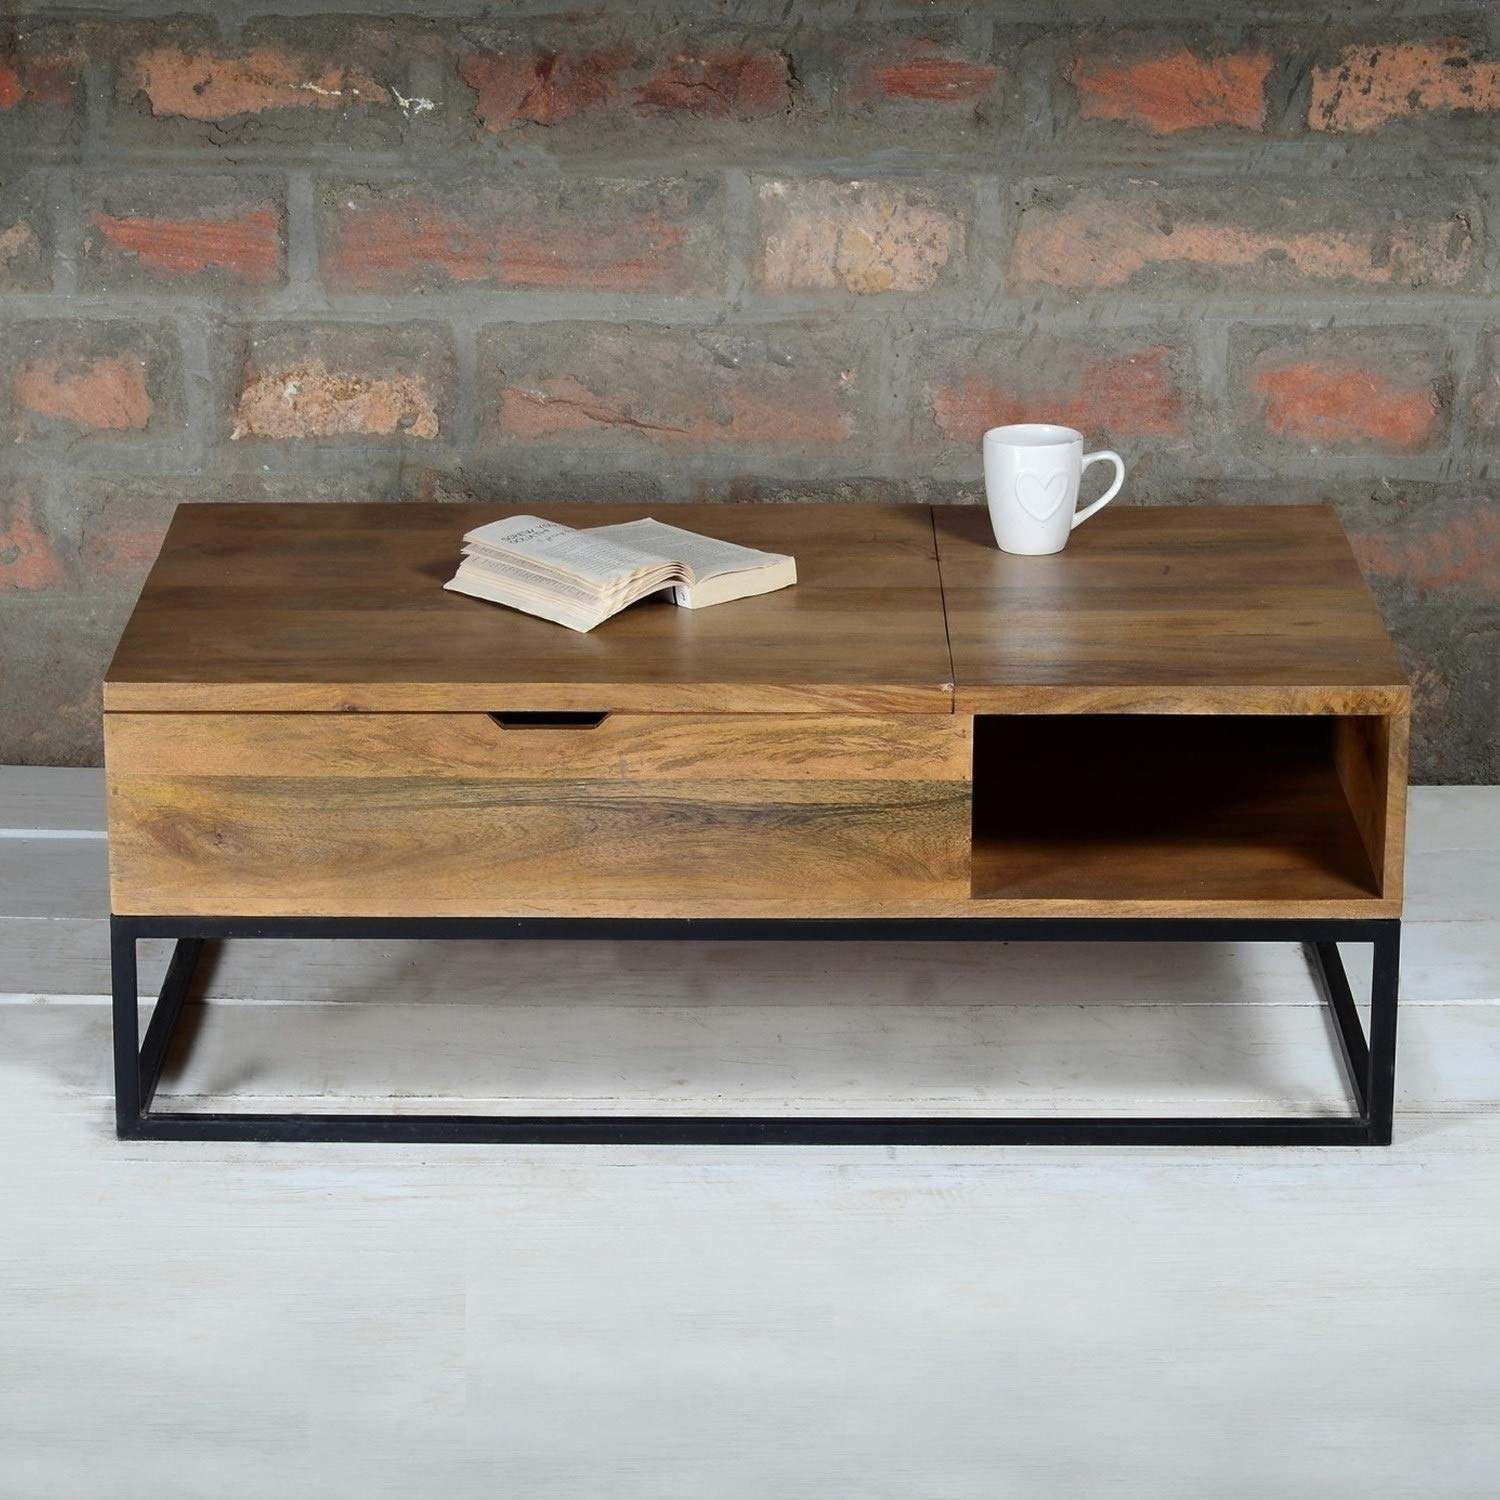 Suri Industrial Coffee Table With Drawer In Mango Wood And Metal